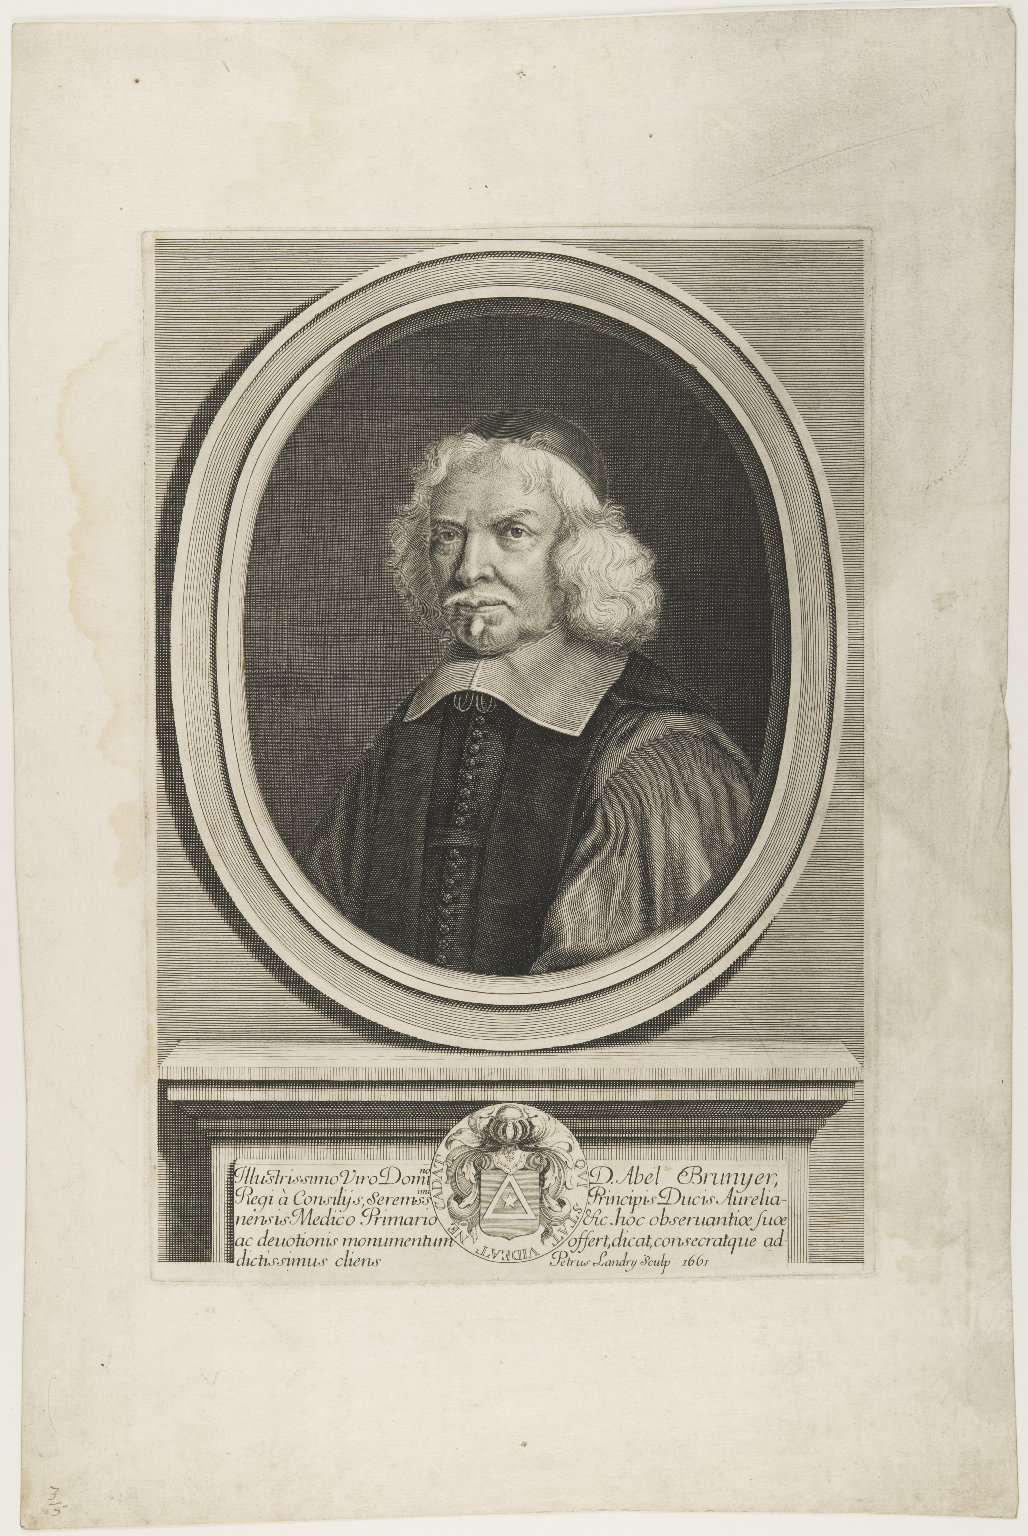 Abel Brunier (1572-1665), French botanist; Physician to the Duke of Orleans